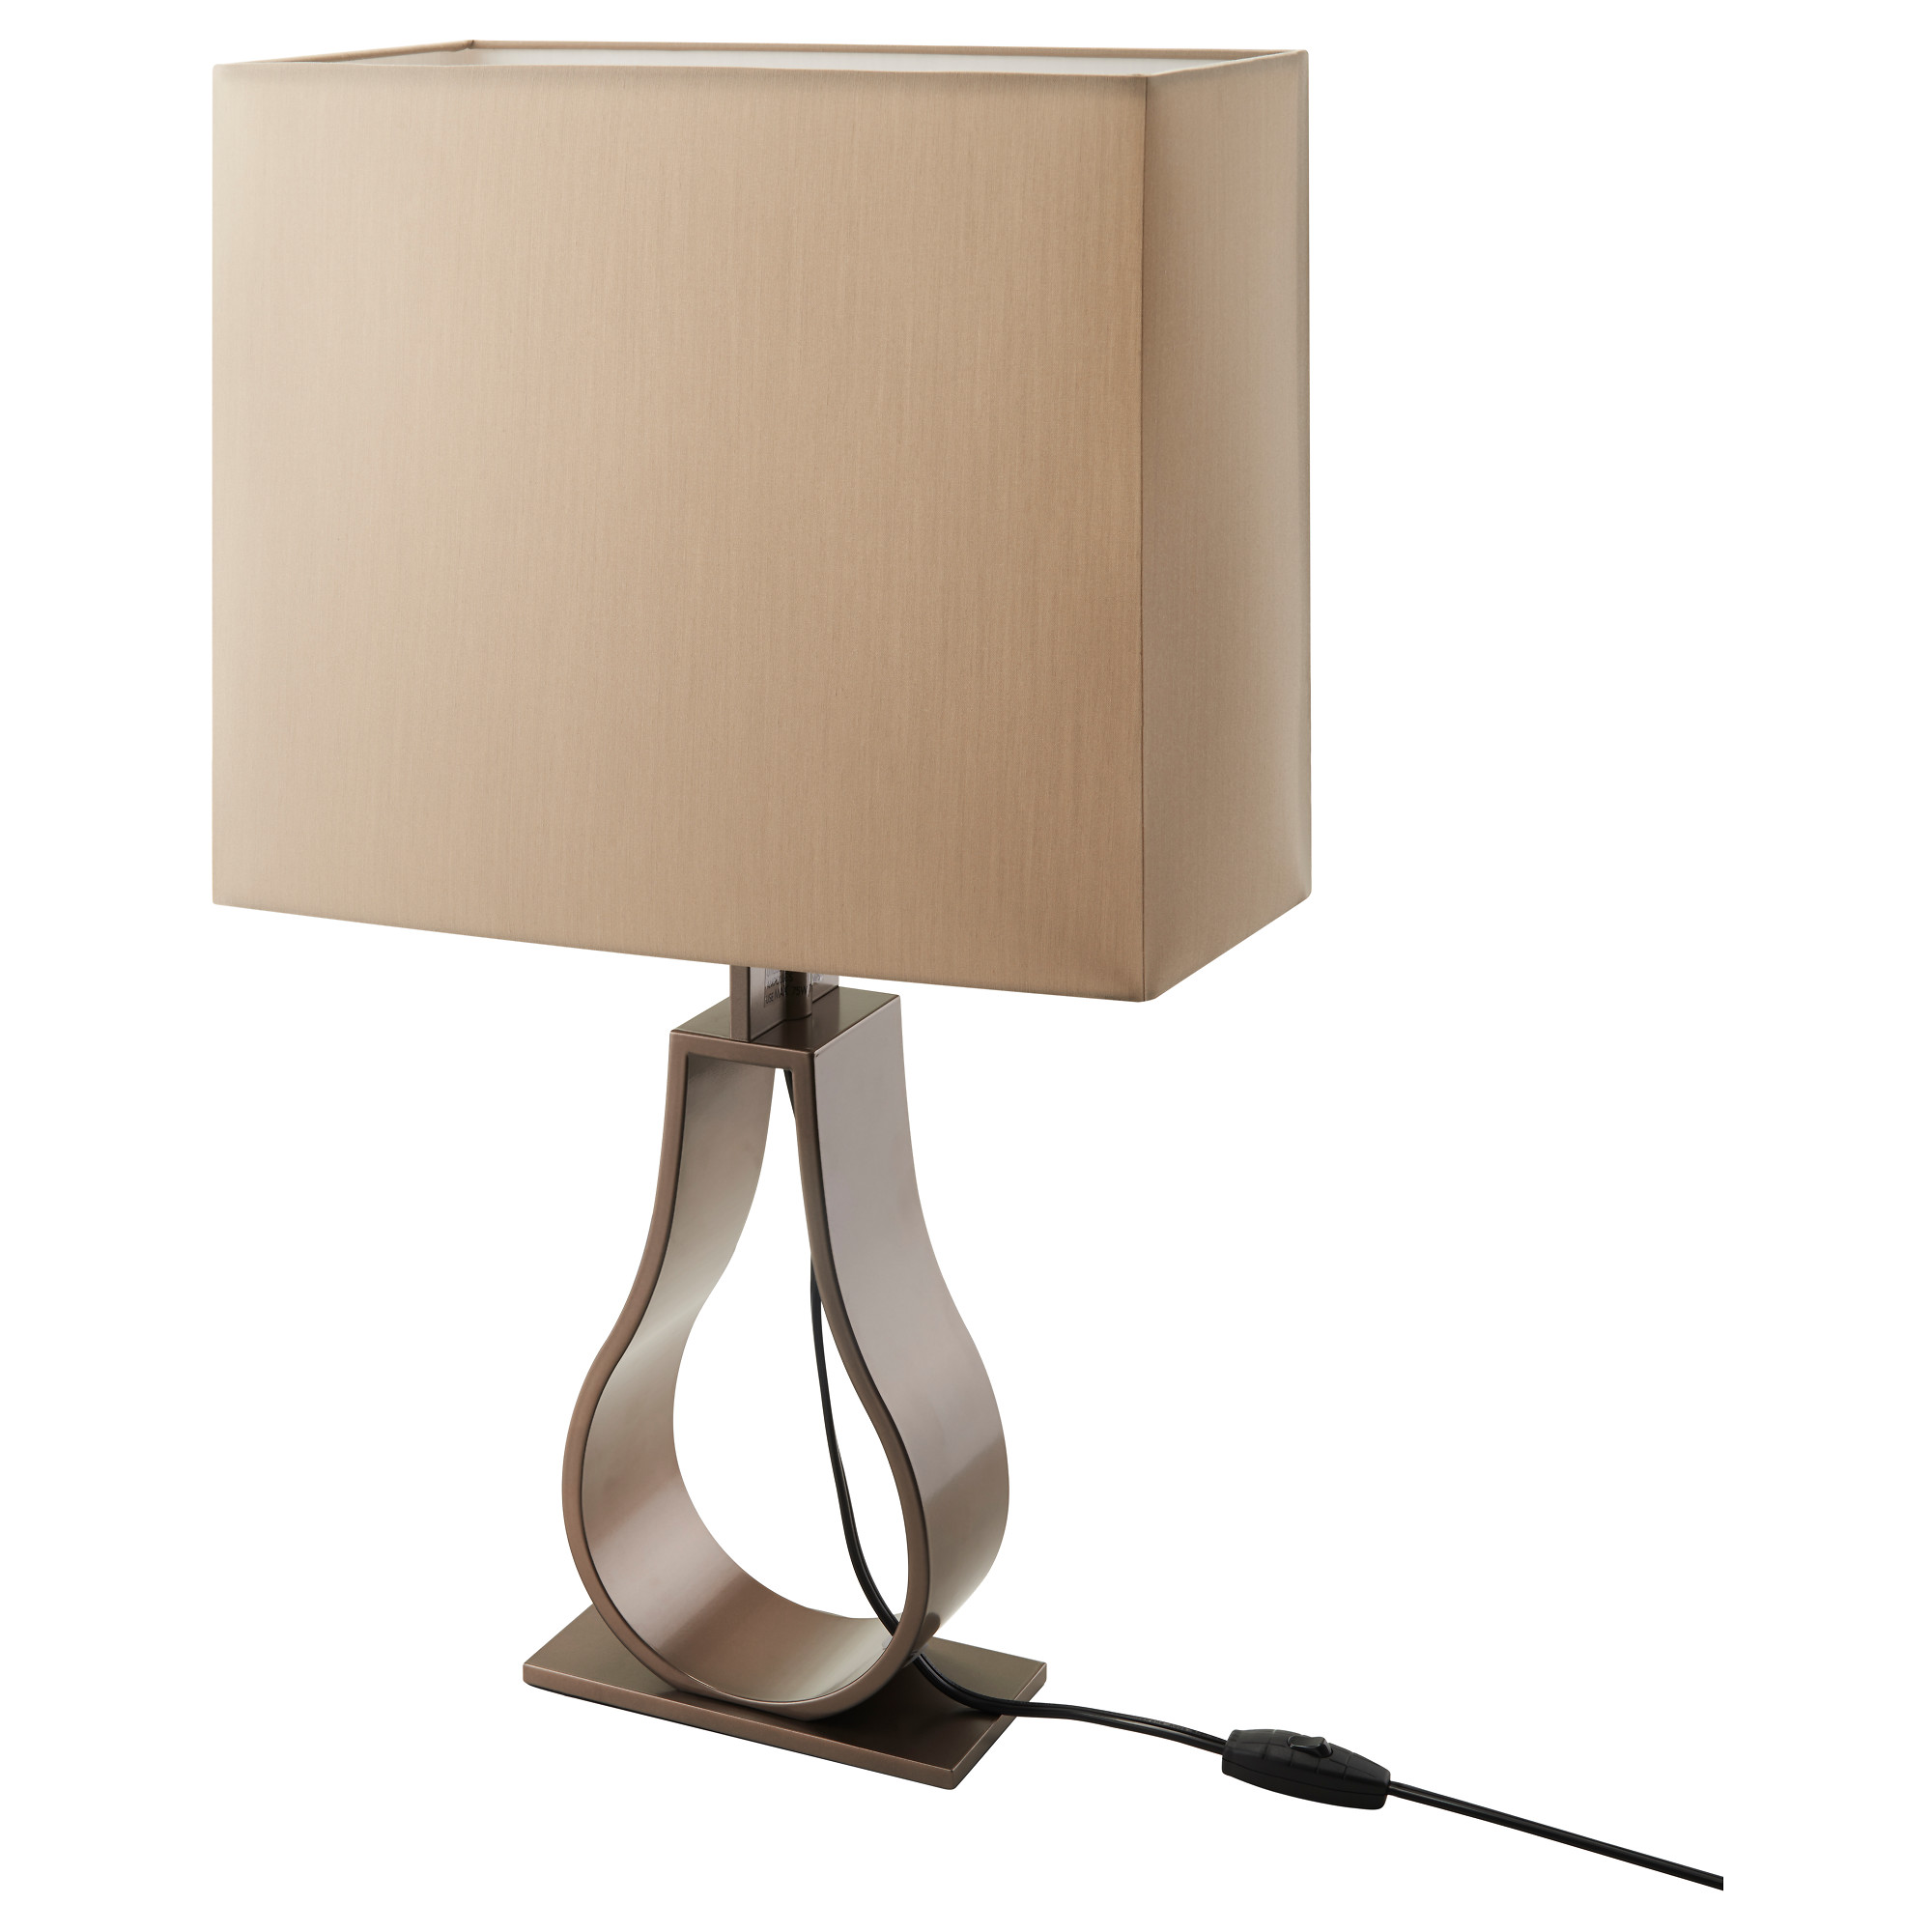 Table lamps ikea klabb table lamp with led bulb light brown bronze color height 24 geotapseo Image collections